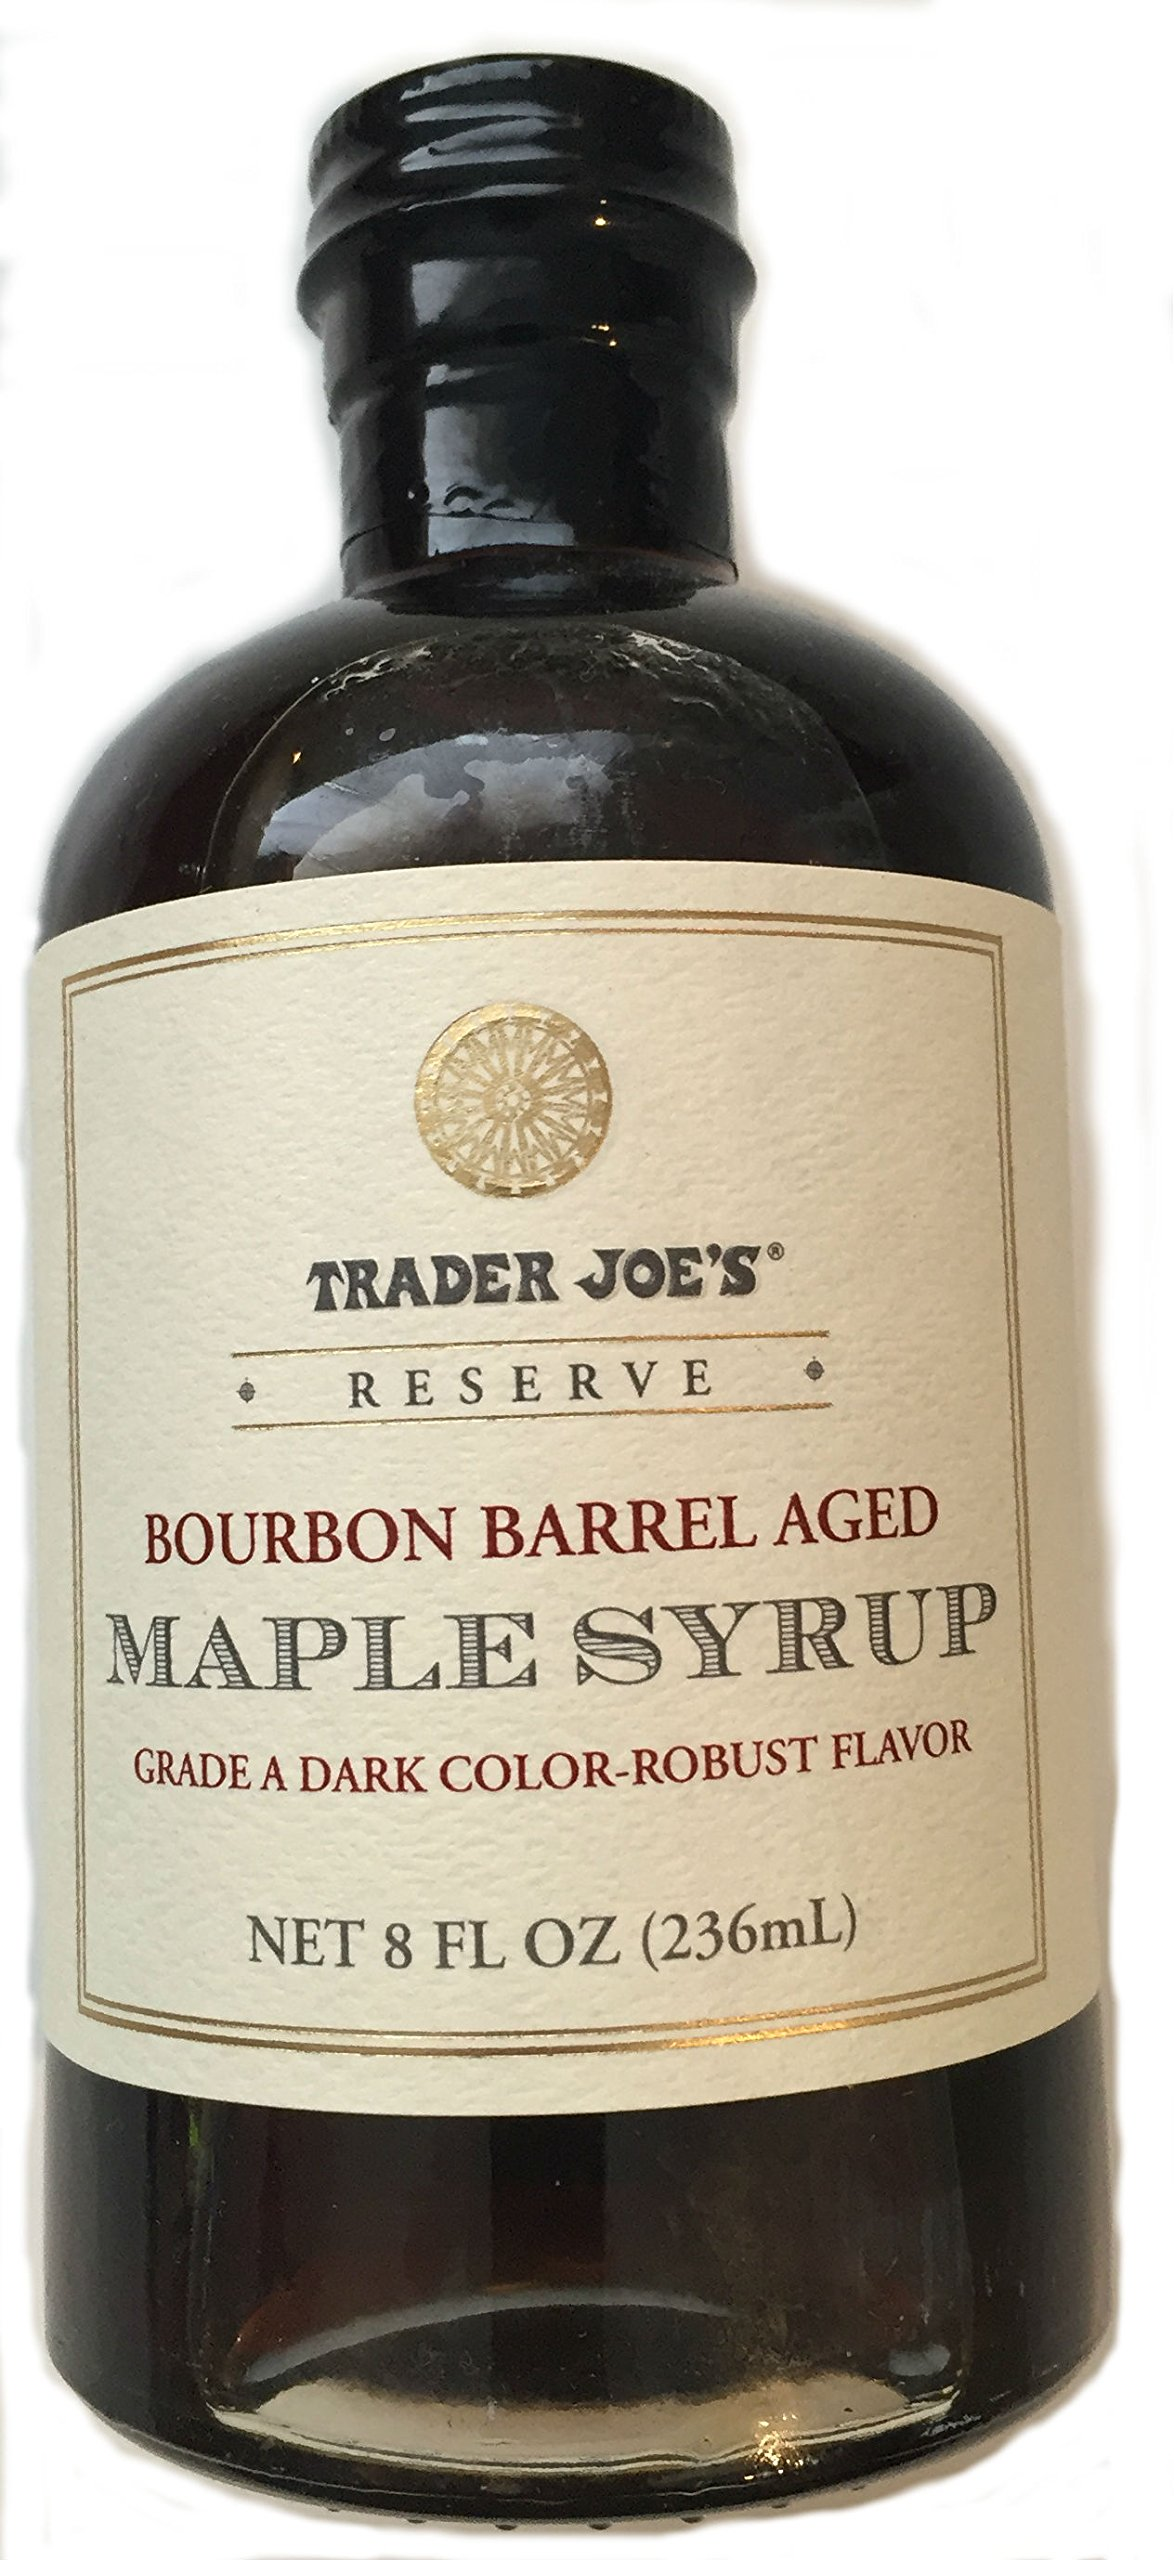 Trader Joe's Bourbon Barrel Aged Maple Syrup 8 Fl Oz